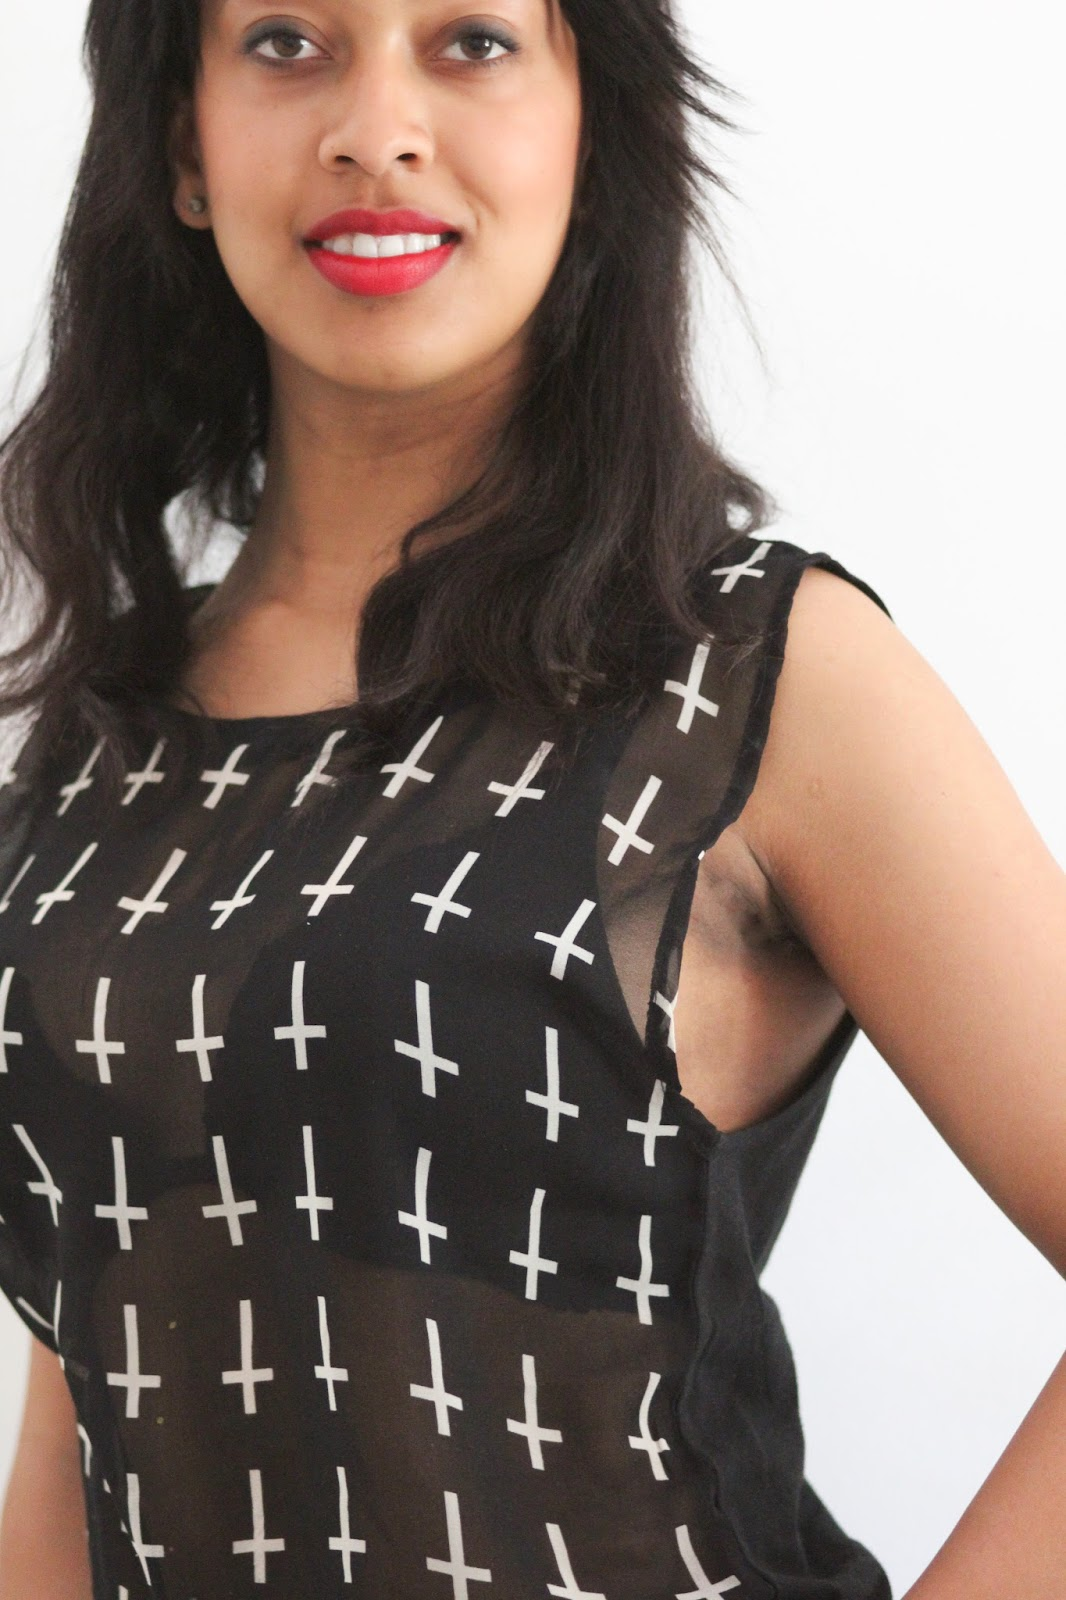 OUTFIT: 24COLOURS BLACK WHITE CROSS PRINTED TOP PRIZMAHFASHION